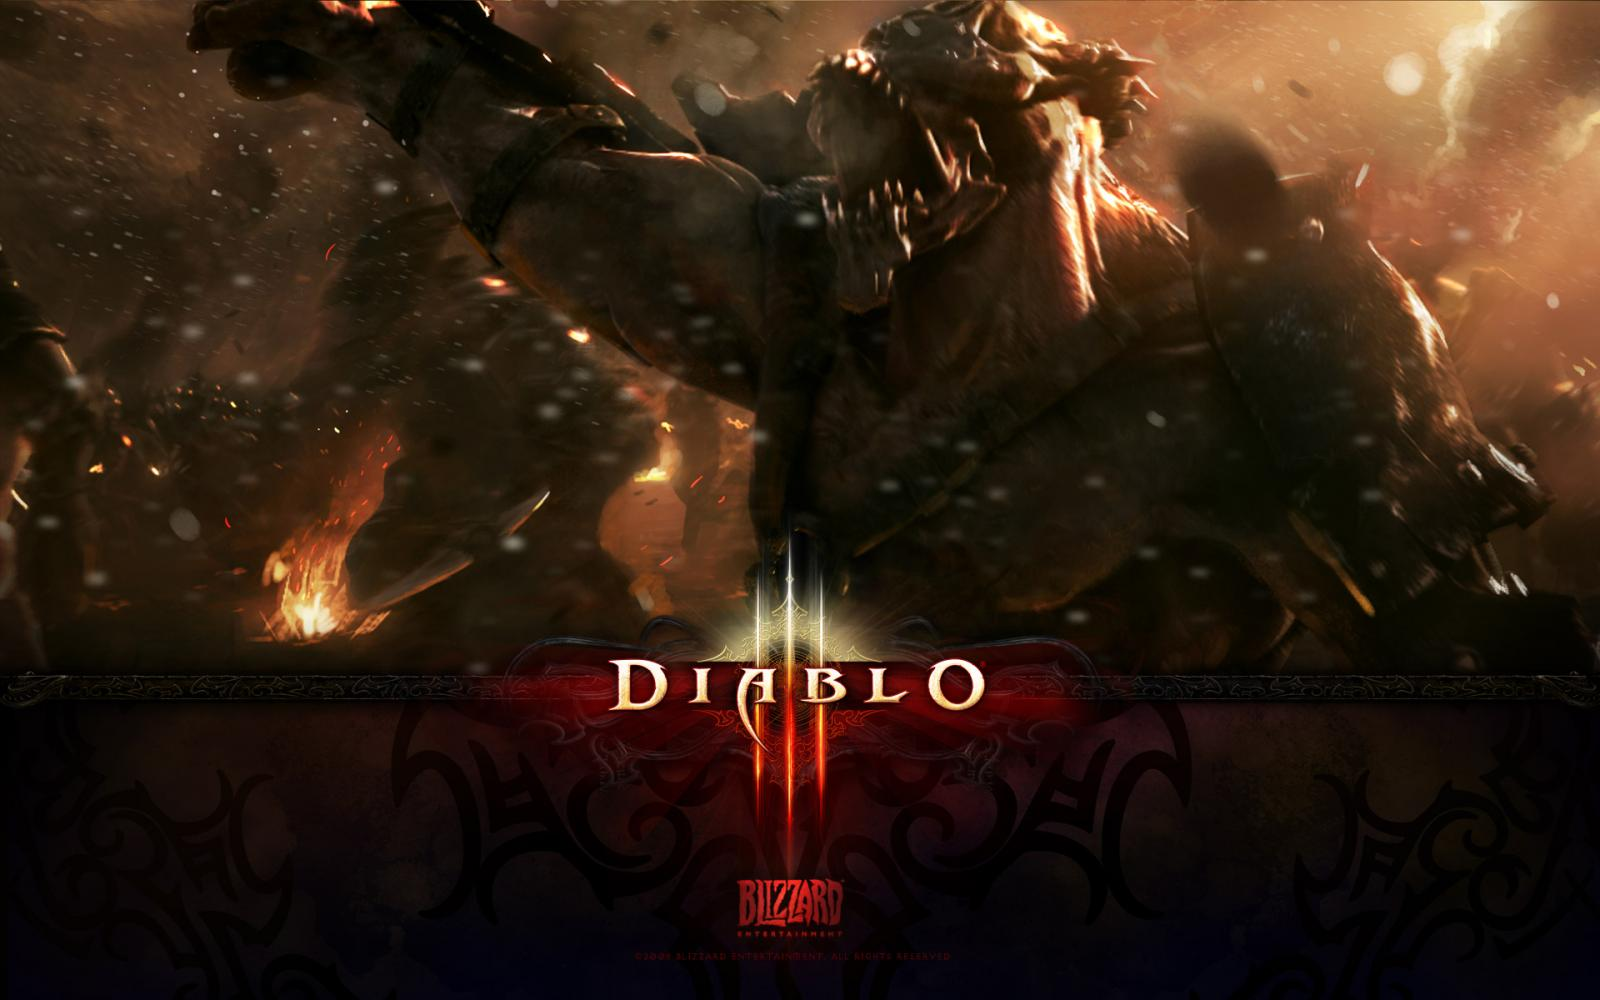 Wallpaper Jeux video Diablo 3 Armee